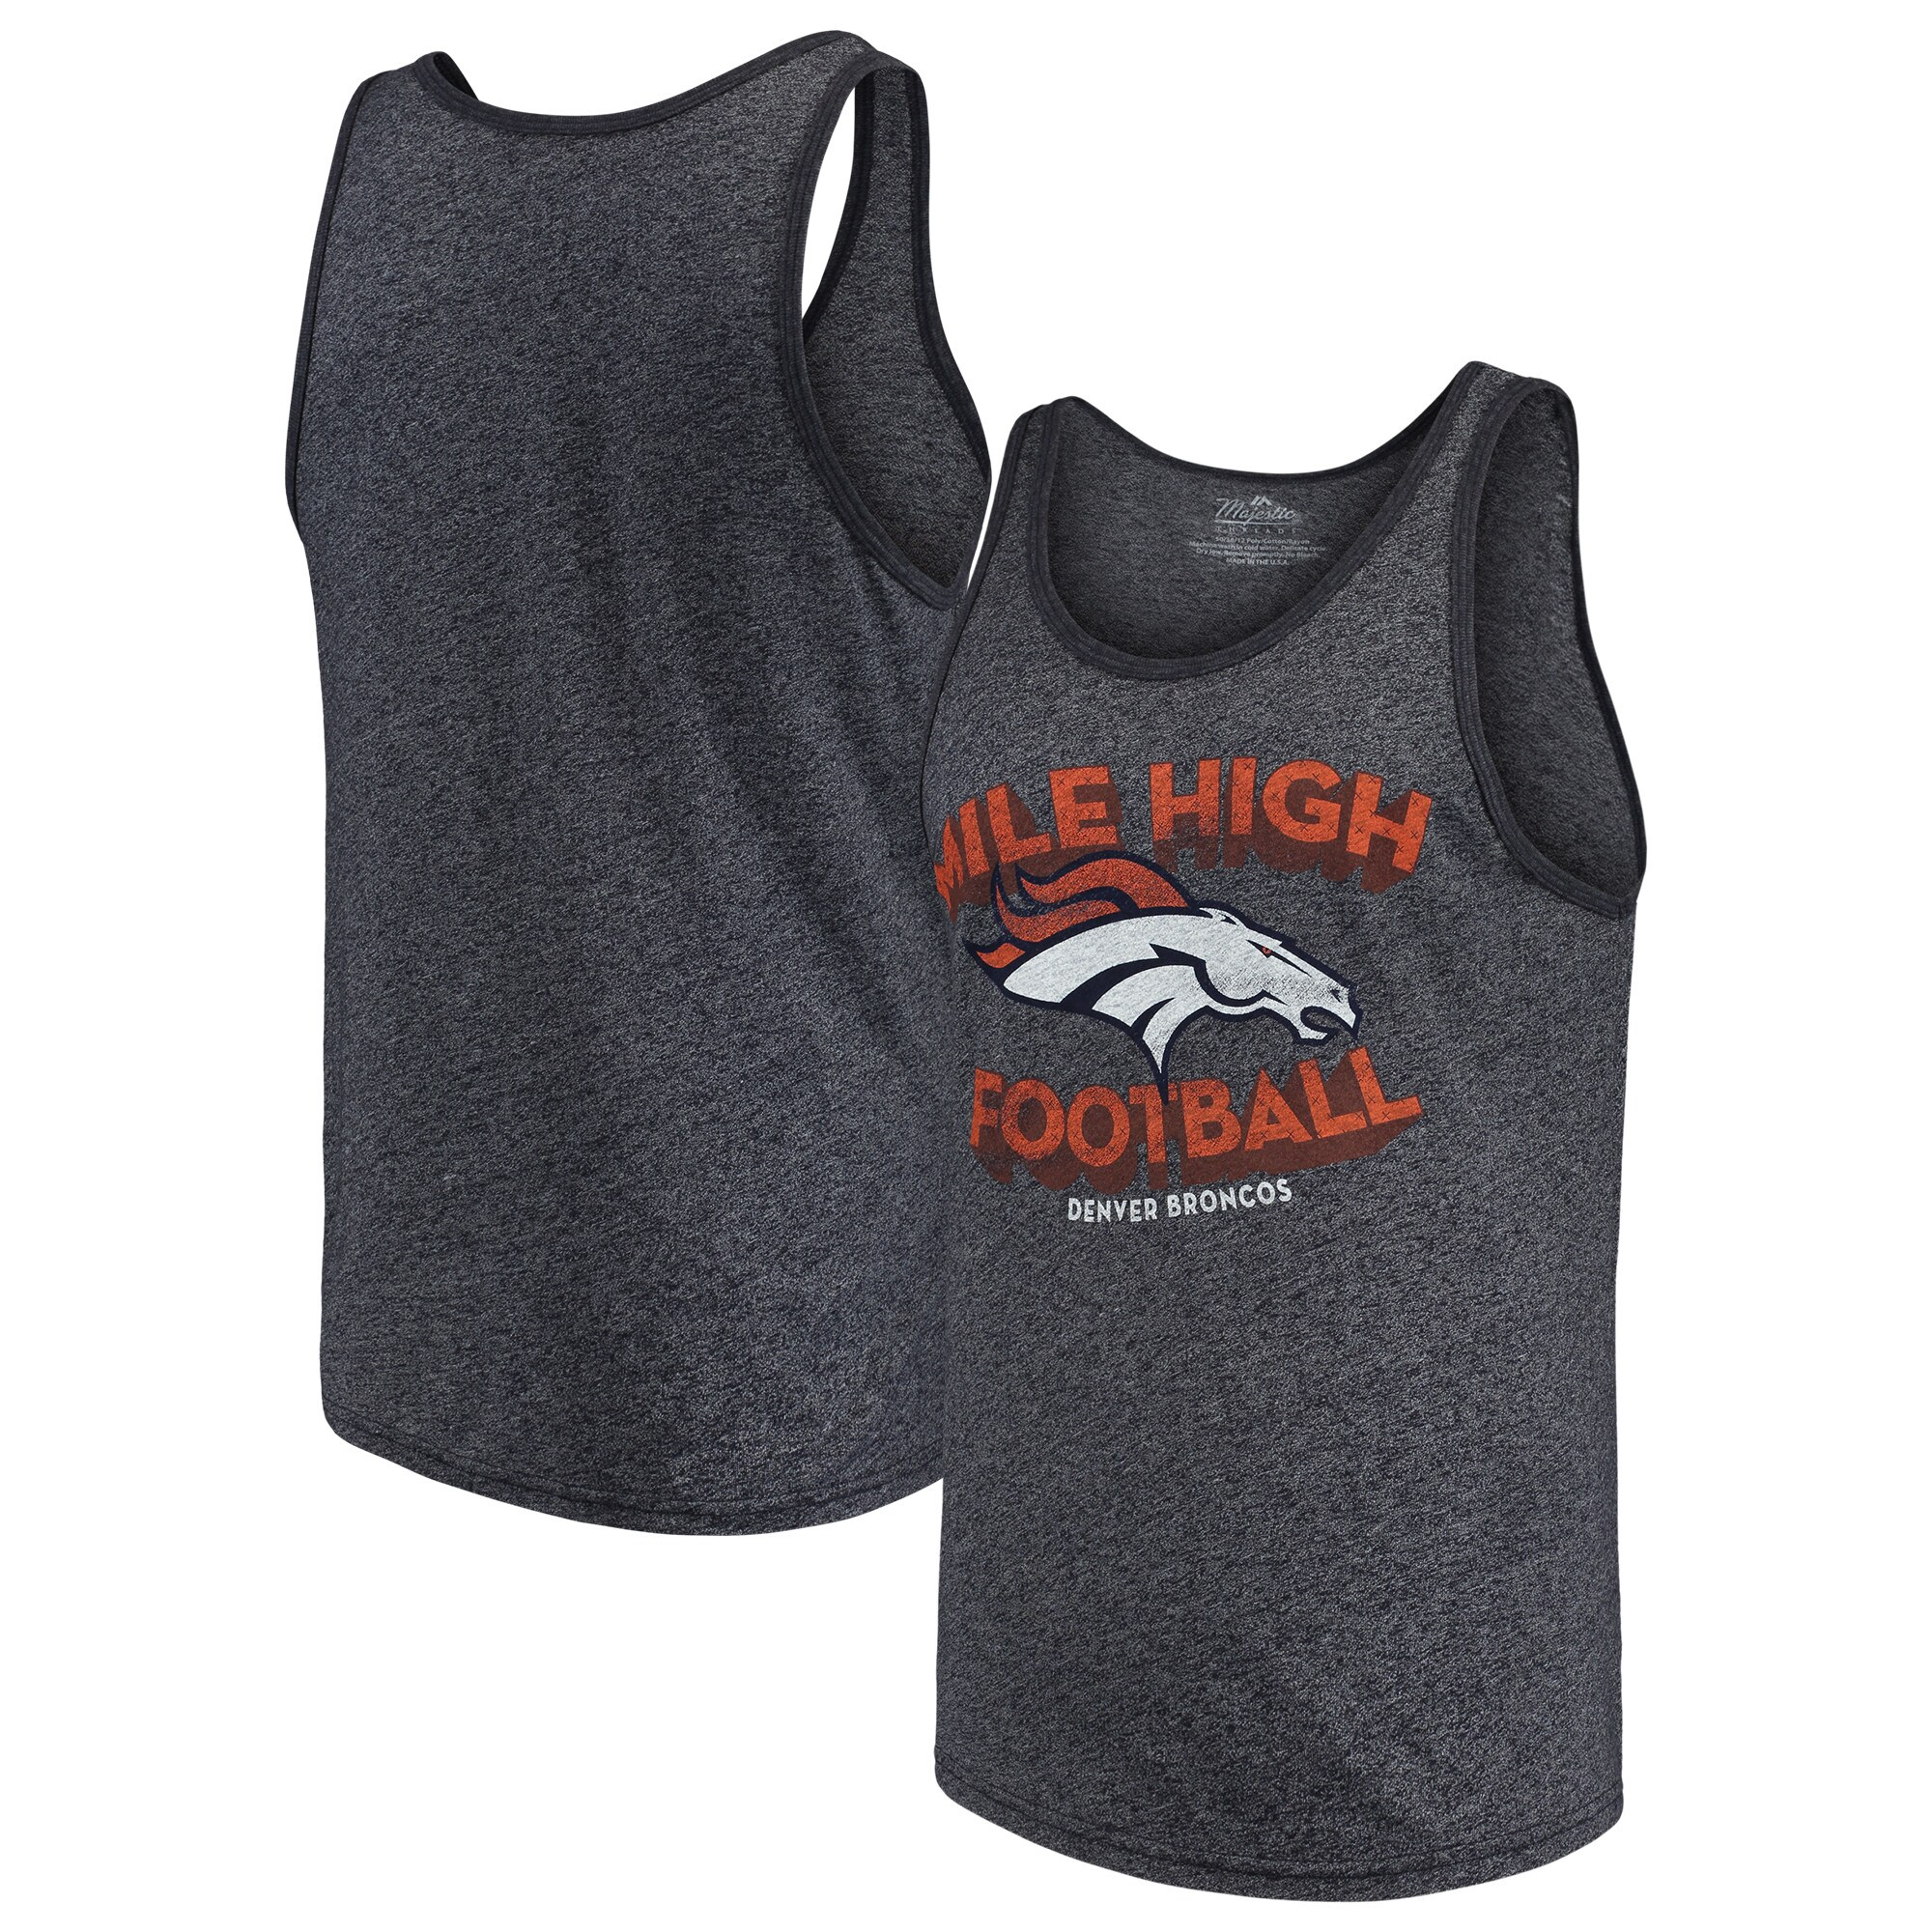 Denver Broncos Majestic Threads Slogan Tri-Blend Tank Top - Navy